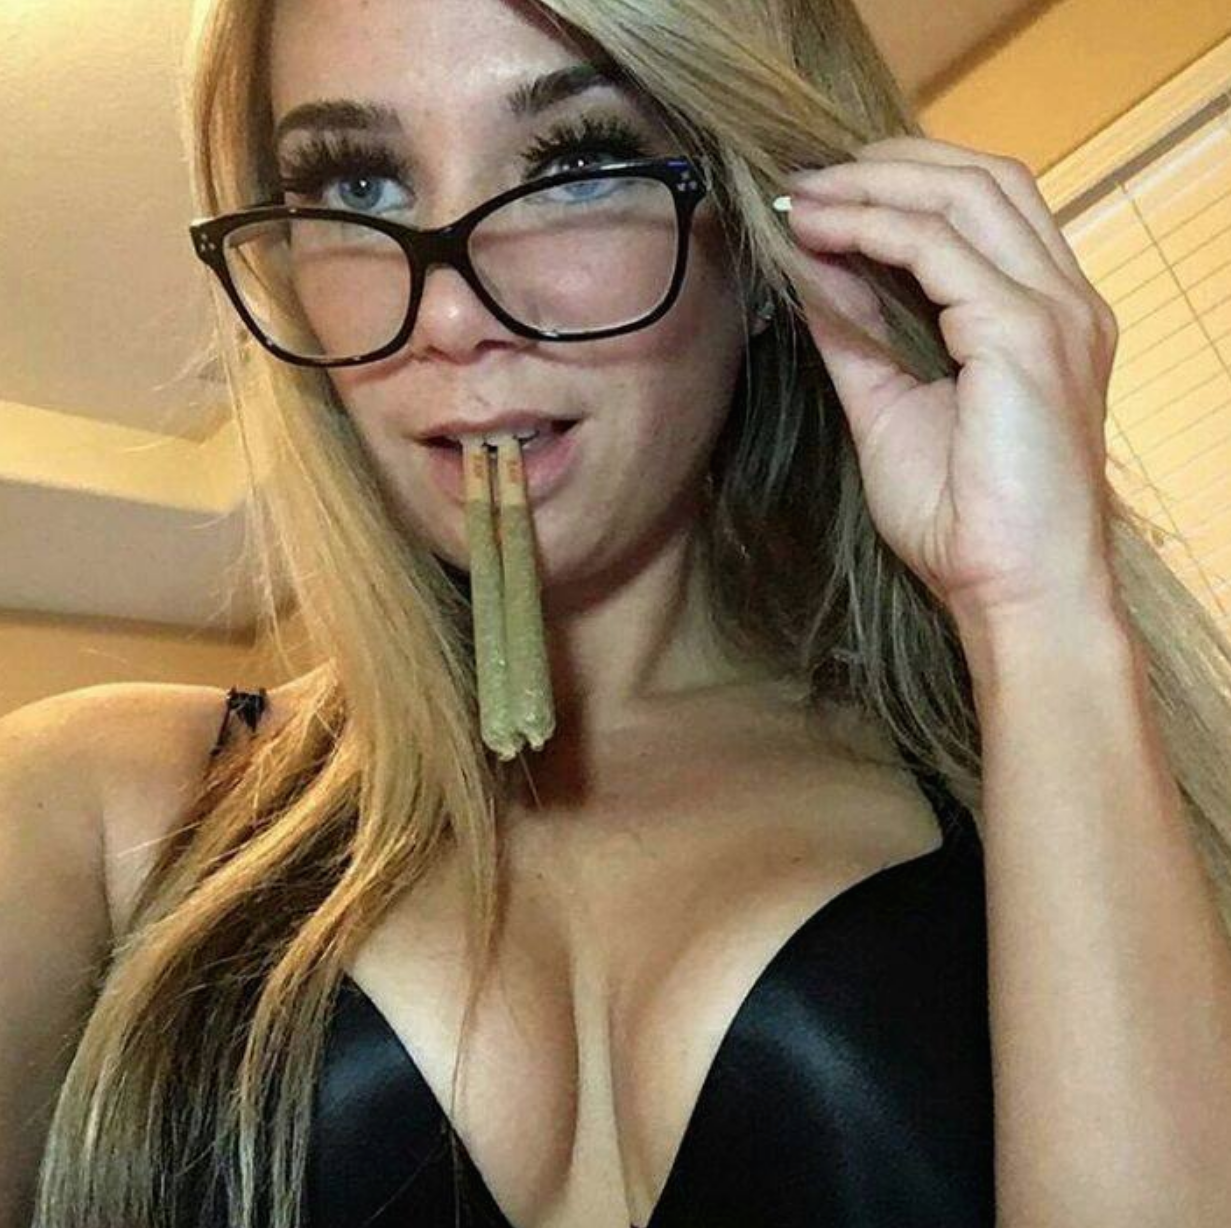 knockout blonde in glasses and black bra top